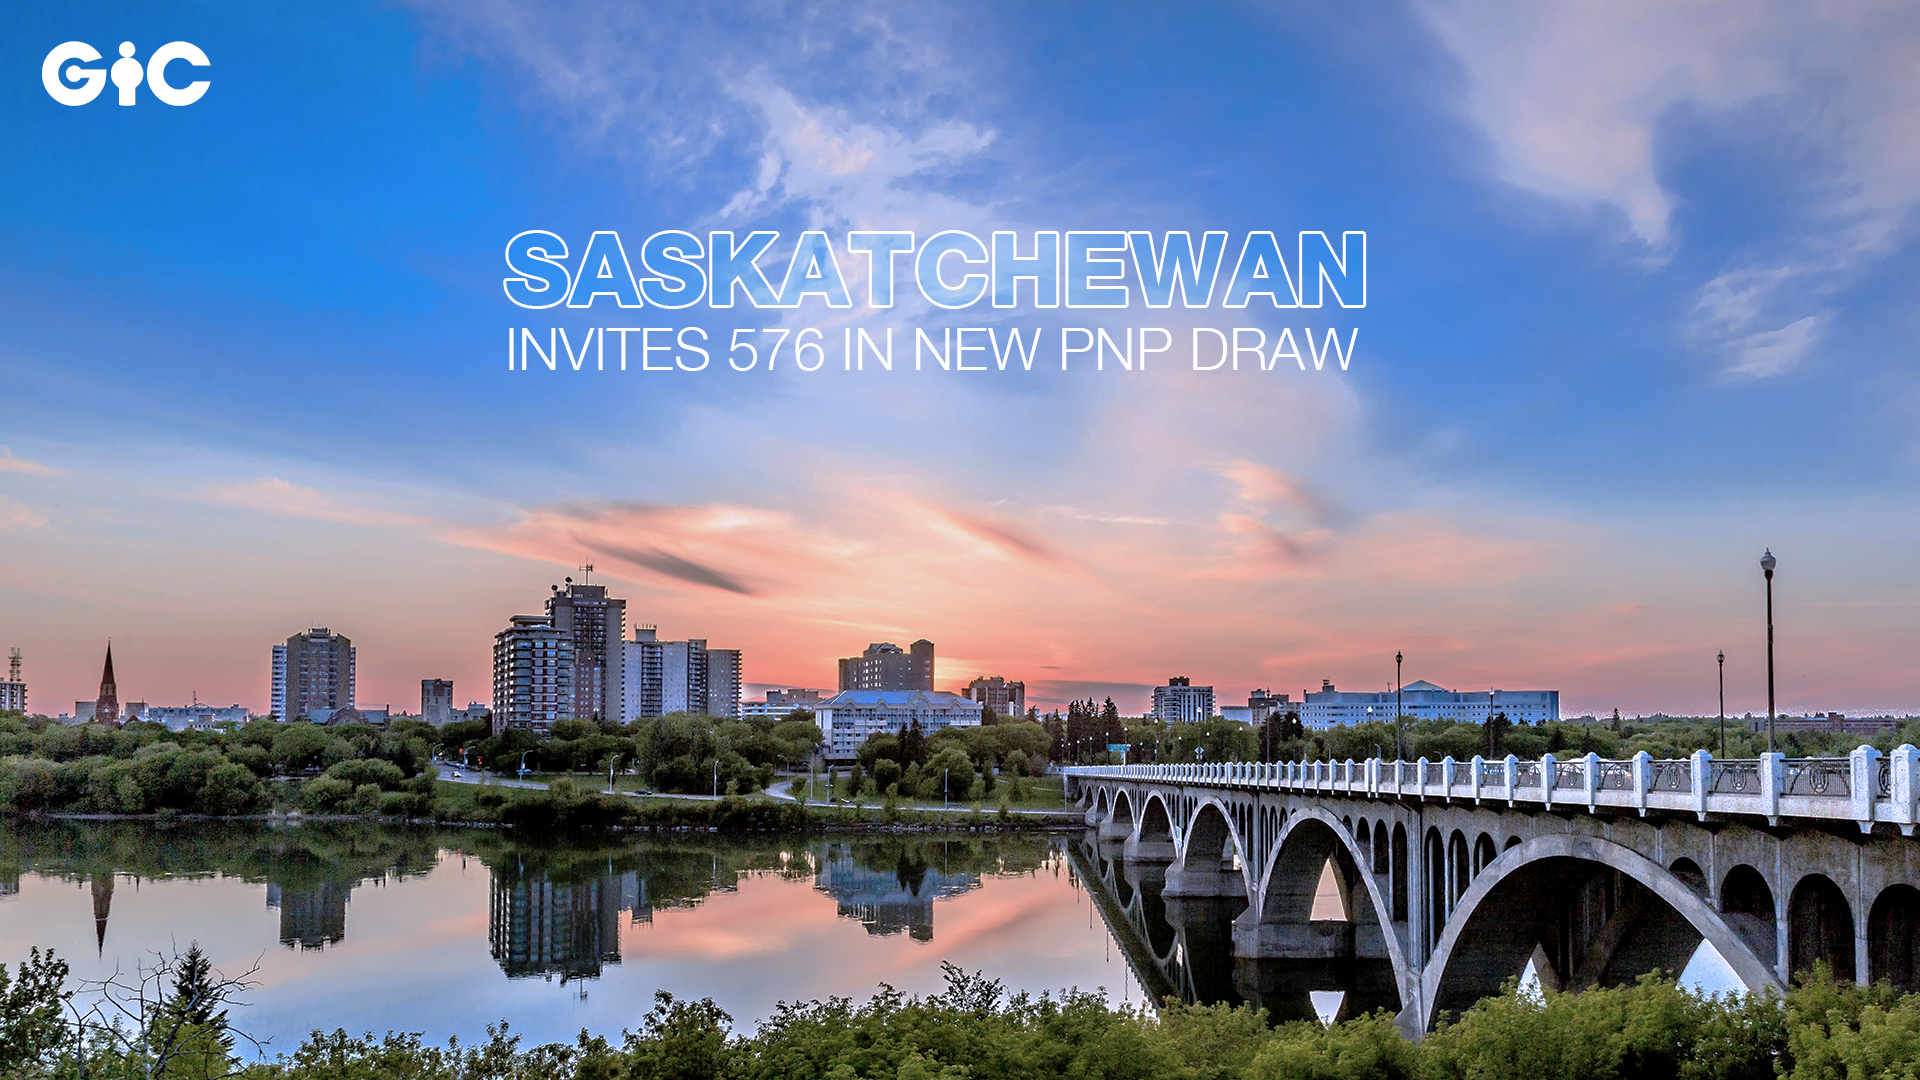 Saskatchewan invites 576 in new PNP draw